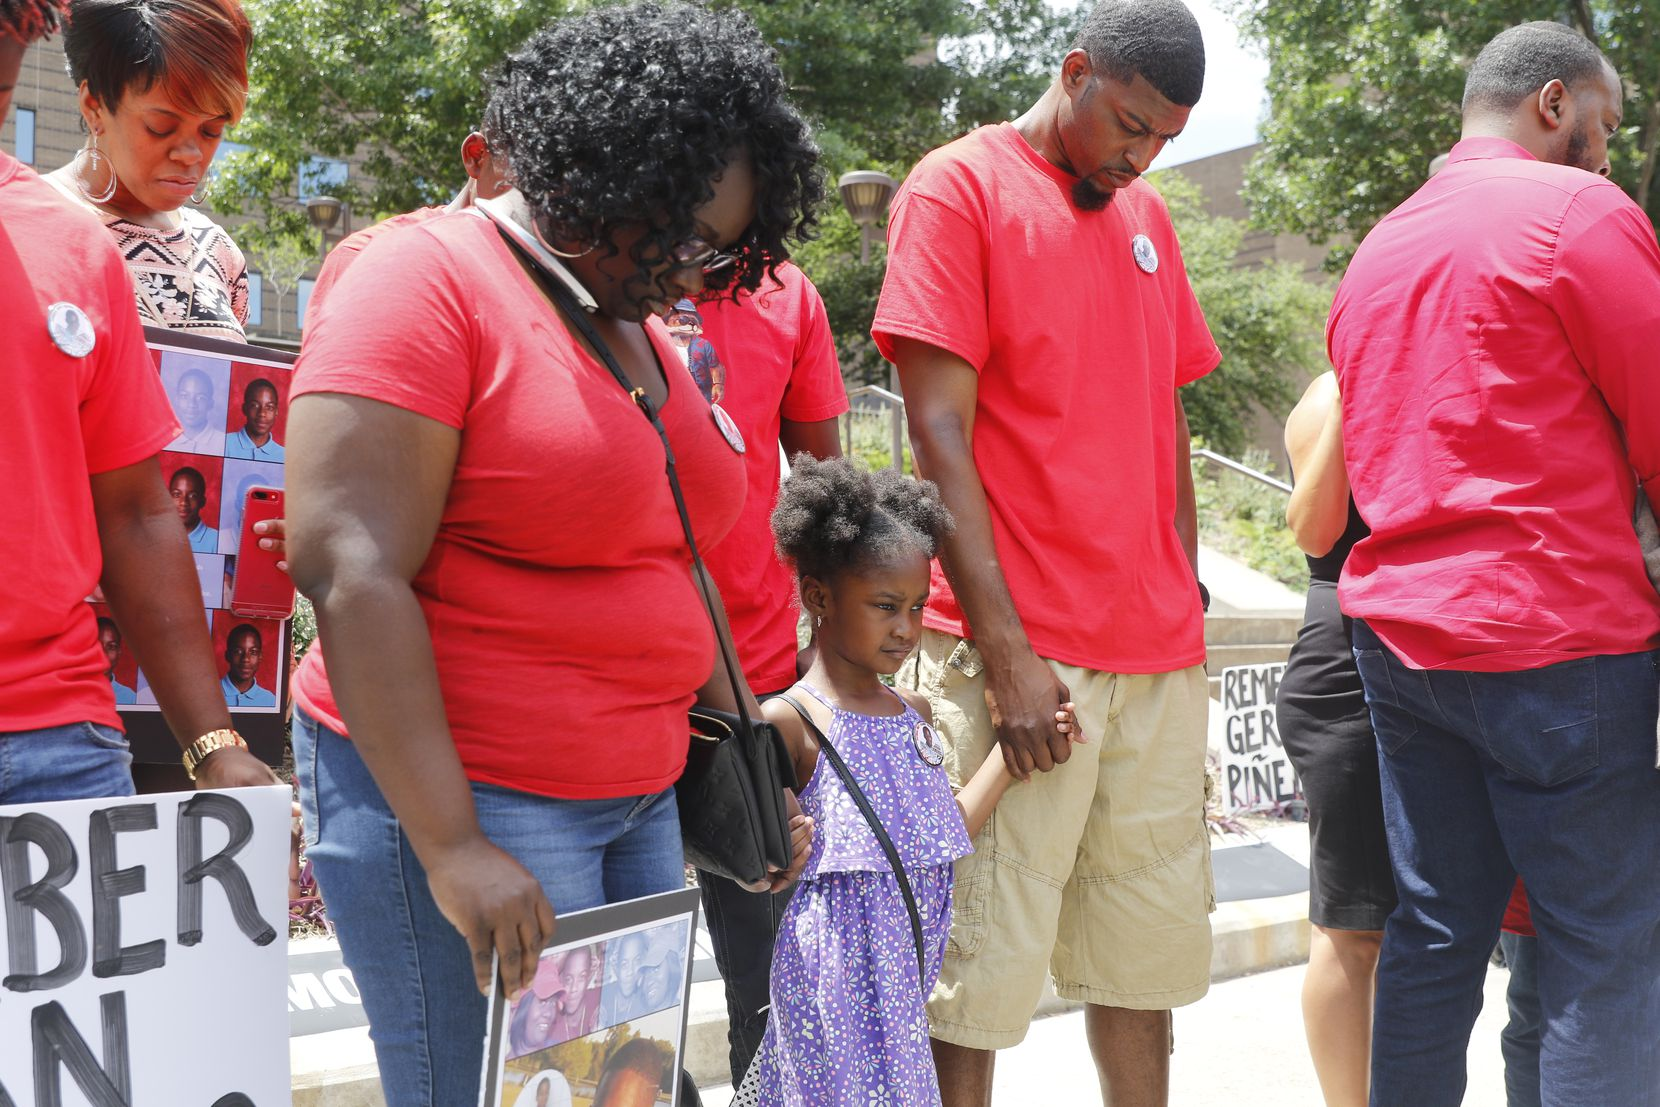 Jordan Edwards' step-mom Charmaine Edwards, sister Korrie Edwards, 4, and dad, Odell Edwards, bow their heads in prayer in front of the Frank Crowley Courts Building Saturday May 13, 2017 during a rally remembering Jordan and others killed by police.